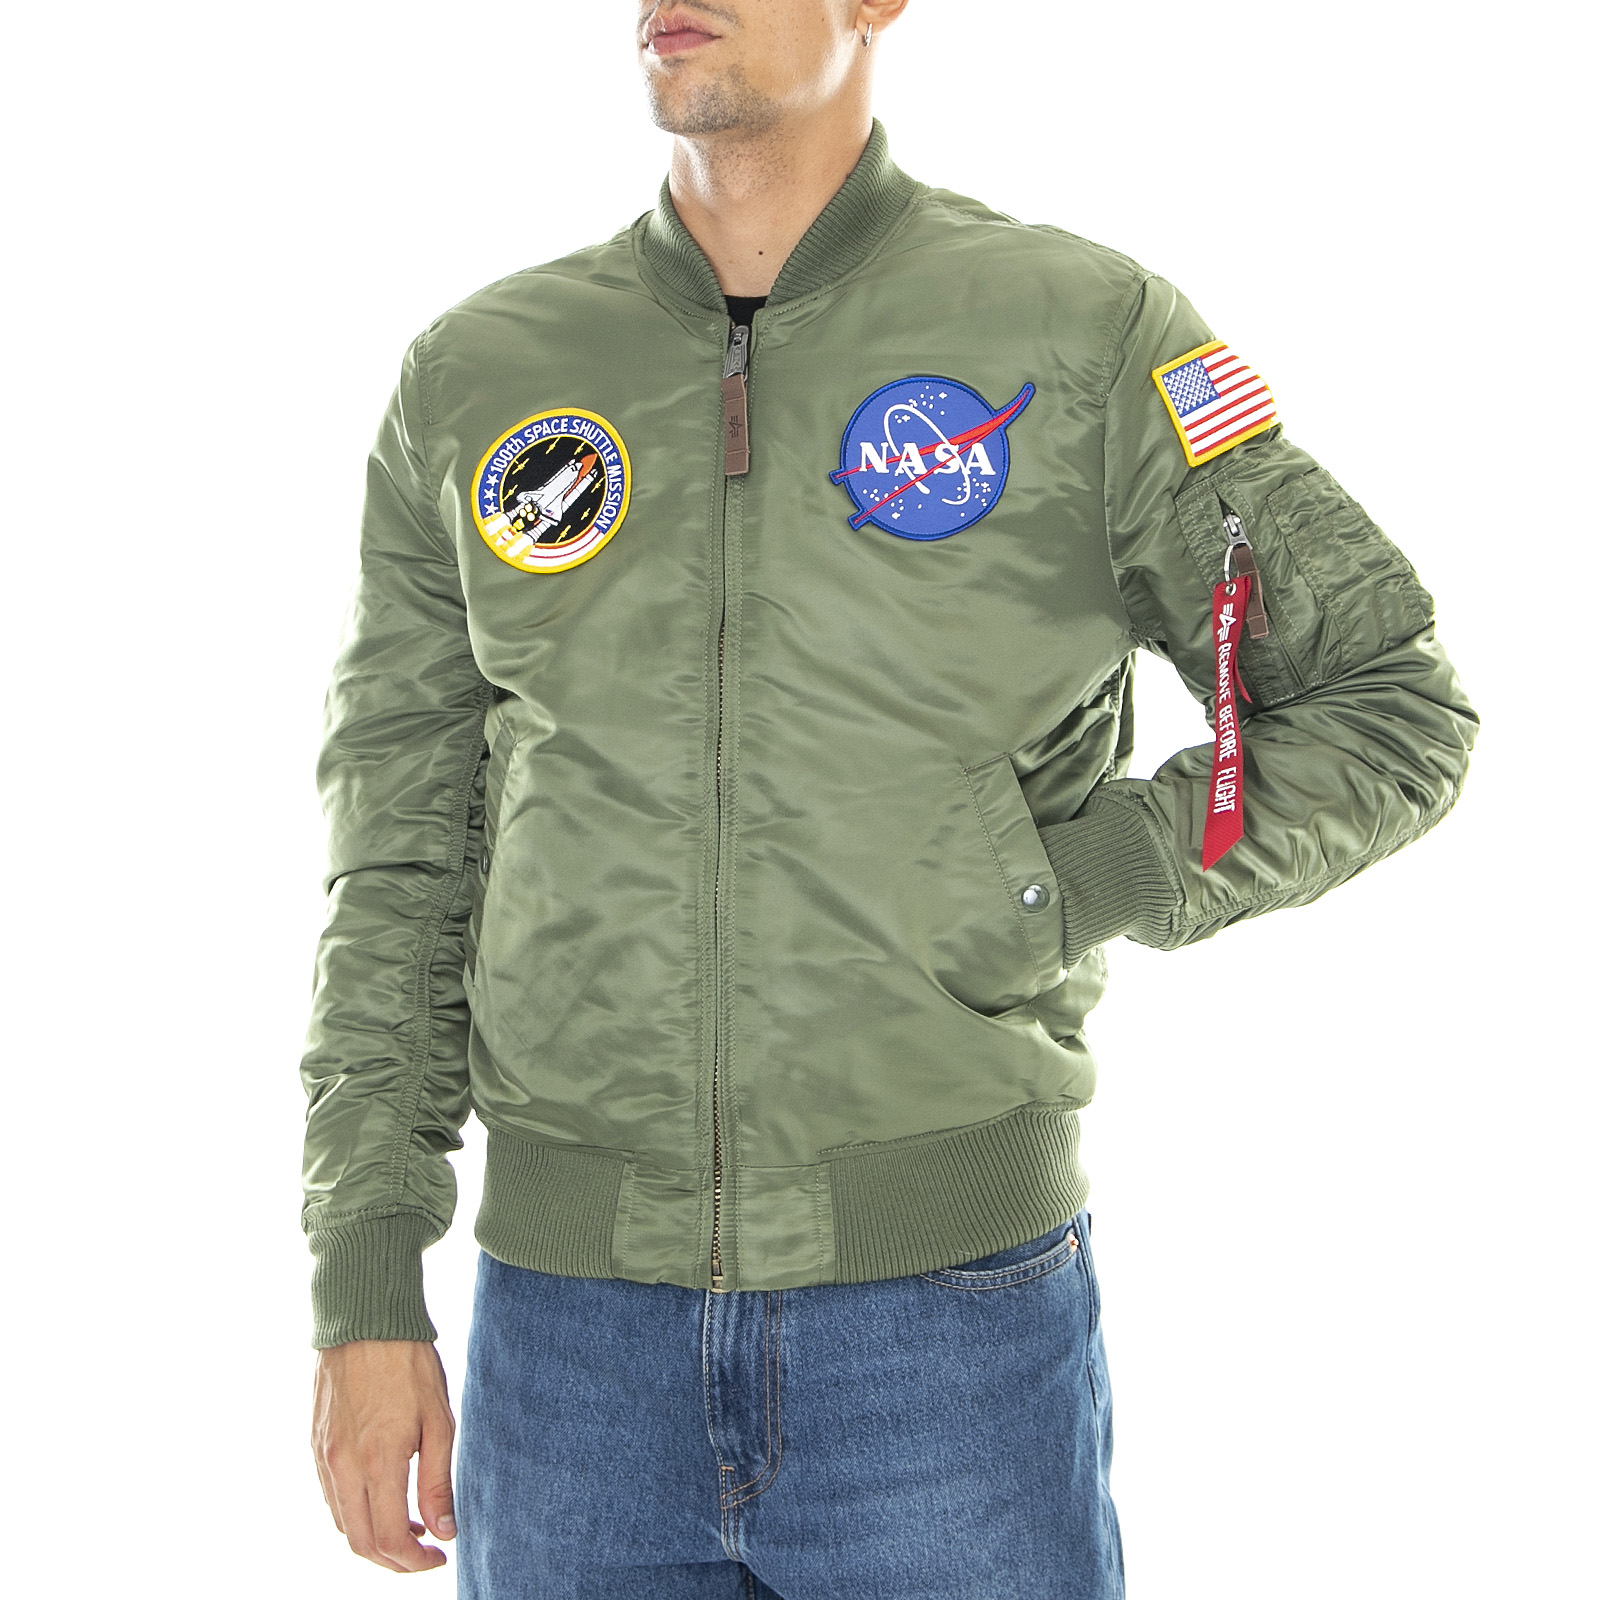 Nasa Green Ebay Ma 1 Industries Giacche Alpha Sage Verde Vf wfqX10nx4P